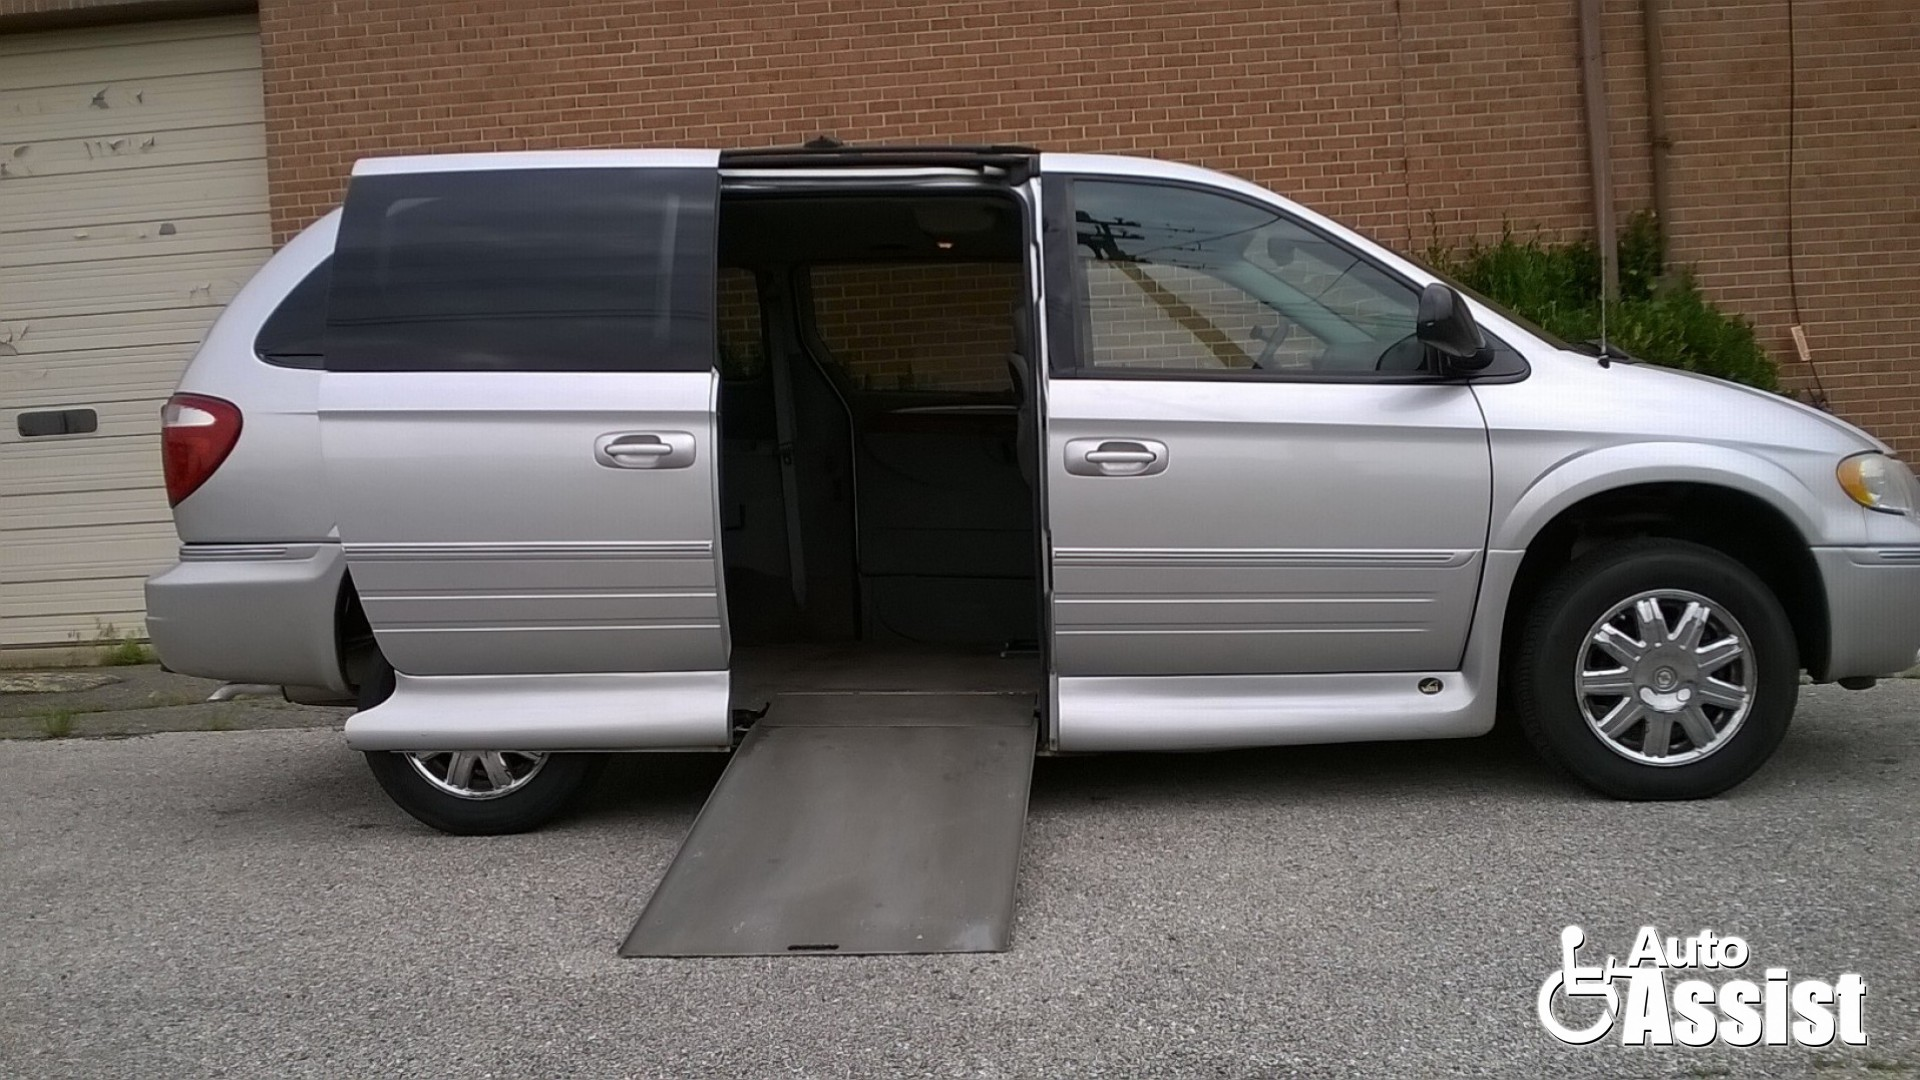 9ad28dbf27 2007 Chrysler Town and Country